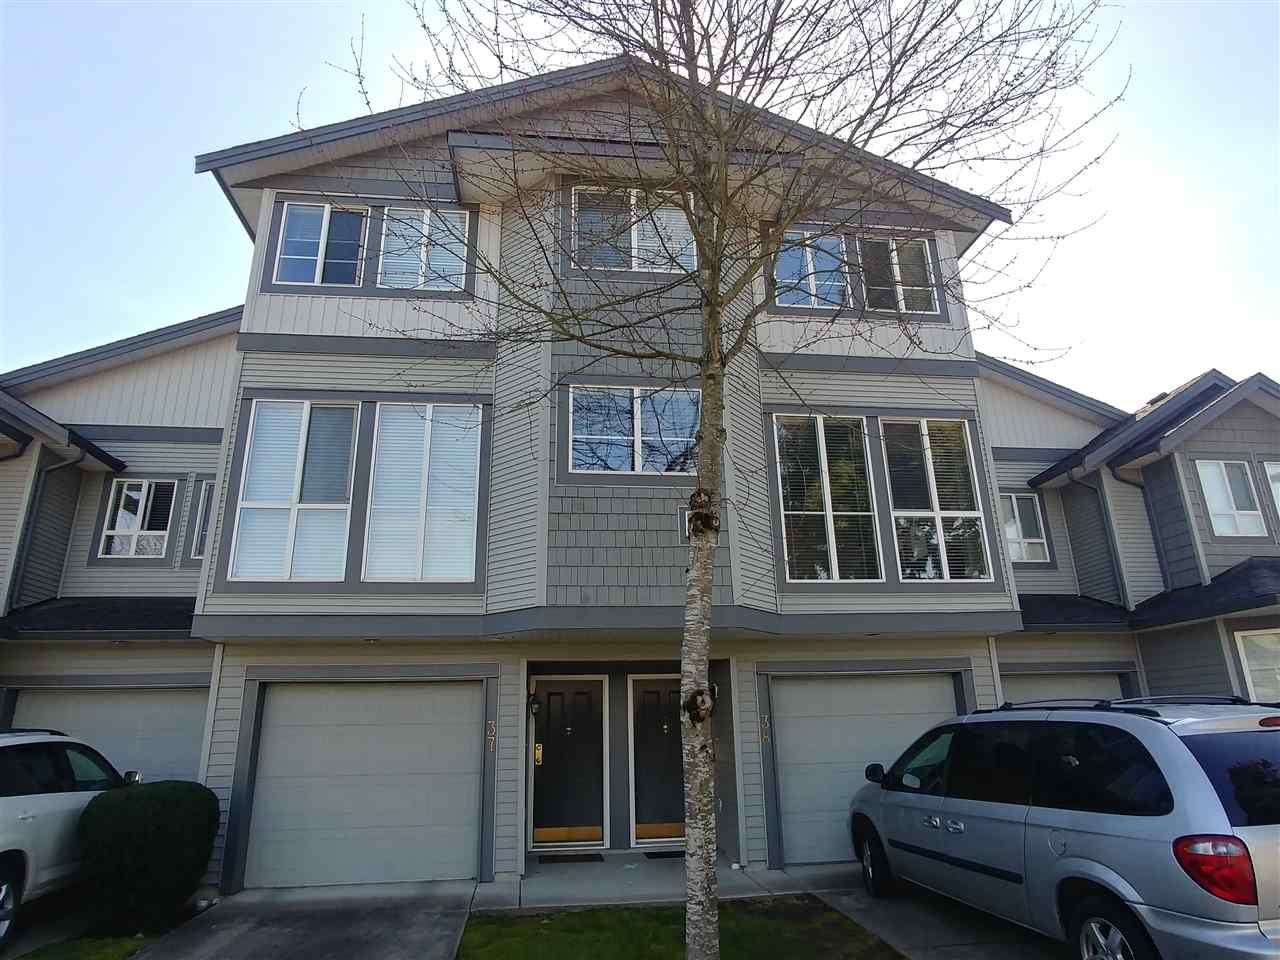 Main Photo: 38 7250 144 STREET in Surrey: East Newton Townhouse for sale : MLS®# R2339008